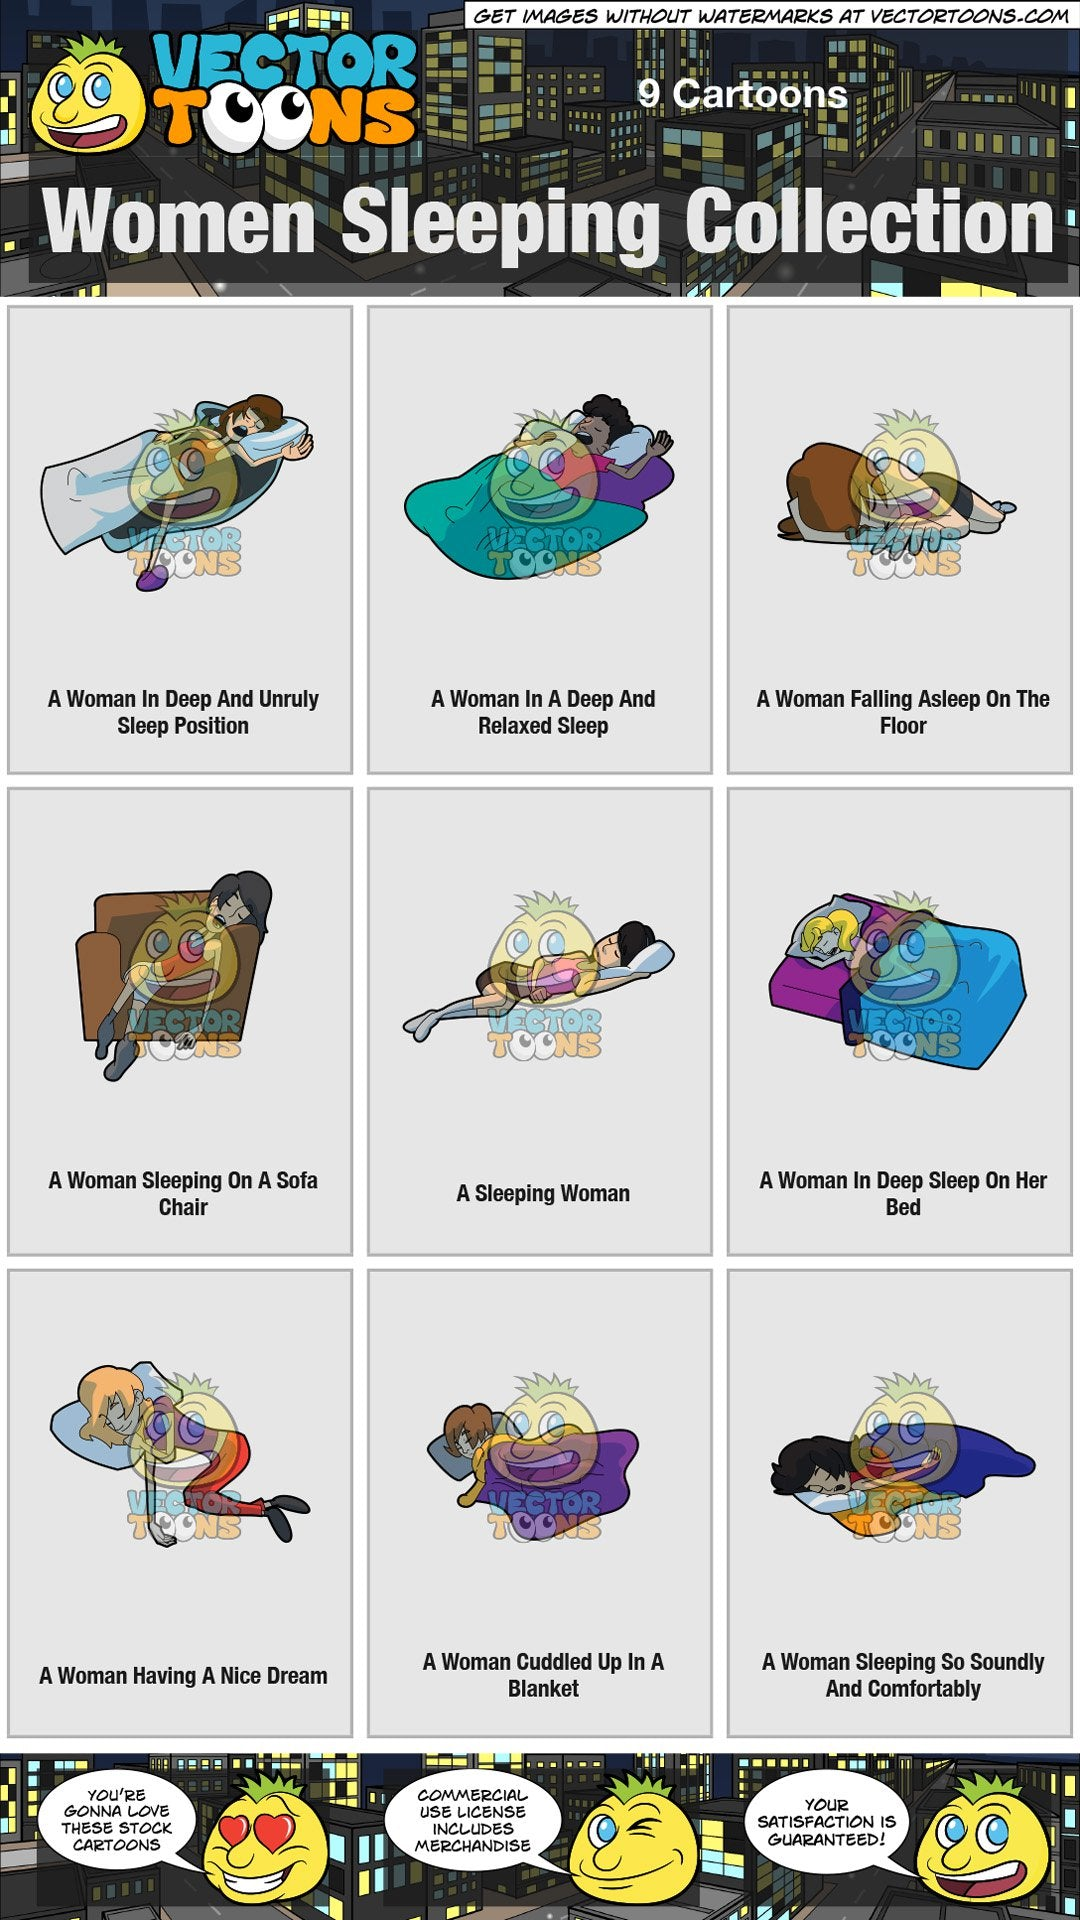 Women Sleeping Collection